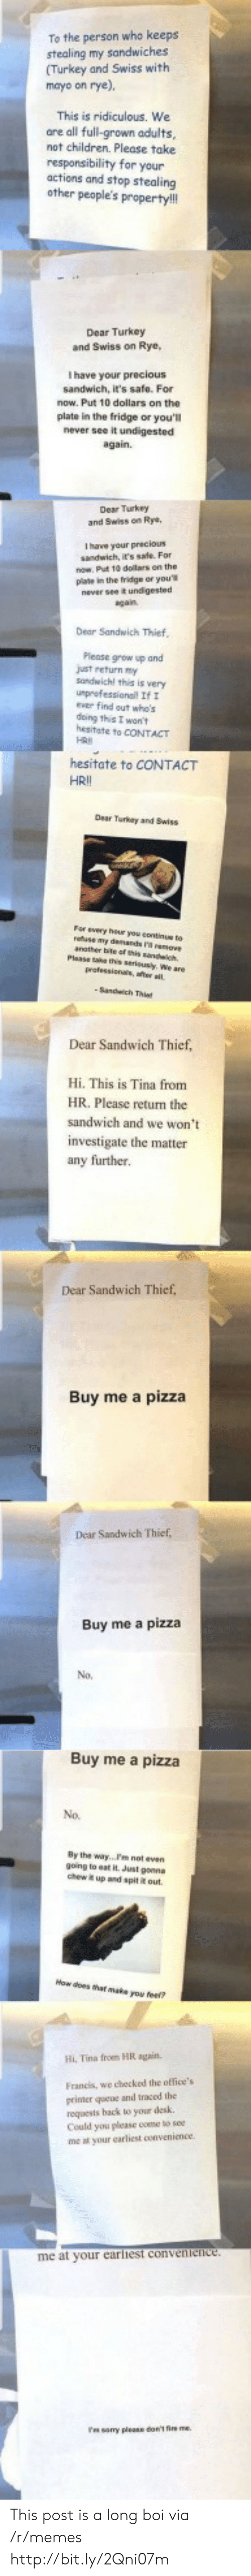 Children, Memes, and Pizza: To the person who keeps  stealing my sandwiches  (Turkey and Swiss with  mayo on rye),  This is ridiculous. We  are all full-grown adults,  not children. Please take  responsibility for your  actions and stop stealing  other people's property!  Dear Turkey  and Swiss on Rye,  I have your precious  sandwich, it's safe. For  now. Put 10 dollars on the  plate in the fridge or you'll  never see it undigested  again.  Dear Turkey  and Swiss on Rye  Ihave your precious  sandwich, it's safe. For  now Put 10 dolars on the  plate in the fridge or you'  never see it undigested  again  Dear Sandwich Thief  Please grow up and  just return my  sandwichl this is very  unprofessionall If  ever find out who's  deing this I won't  hesitate to CONTACT  HRI  hesitate to CONTACT  HRII  Dear Turkey and Saiss  For every haur you oine to  smy demands remeve  anather bite of is sandwich.  Plase taehis seriously, We are  gefessionl,aer  Sandh Thi  Dear Sandwich Thief,  Hi. This is Tina from  HR. Please return the  sandwich and we won't  investigate the matter  any further.  Dear Sandwich Thief,  Buy me a pizza  Dear Sandwich Thief  Buy me a pizza  No.  Buy me a pizza  No.  By the way...Pm not even-  going to eat it Just gonna  chew up and spit t out  How does that make you feef?  Hi, Tina from HR again.  Francis, we checked the office's  primer qucue and traced the  requests hack to your deska  Could you please come to see  me at your carliest convenience  me at your earlhest convenience  samy please don't ie me. This post is a long boi via /r/memes http://bit.ly/2Qni07m